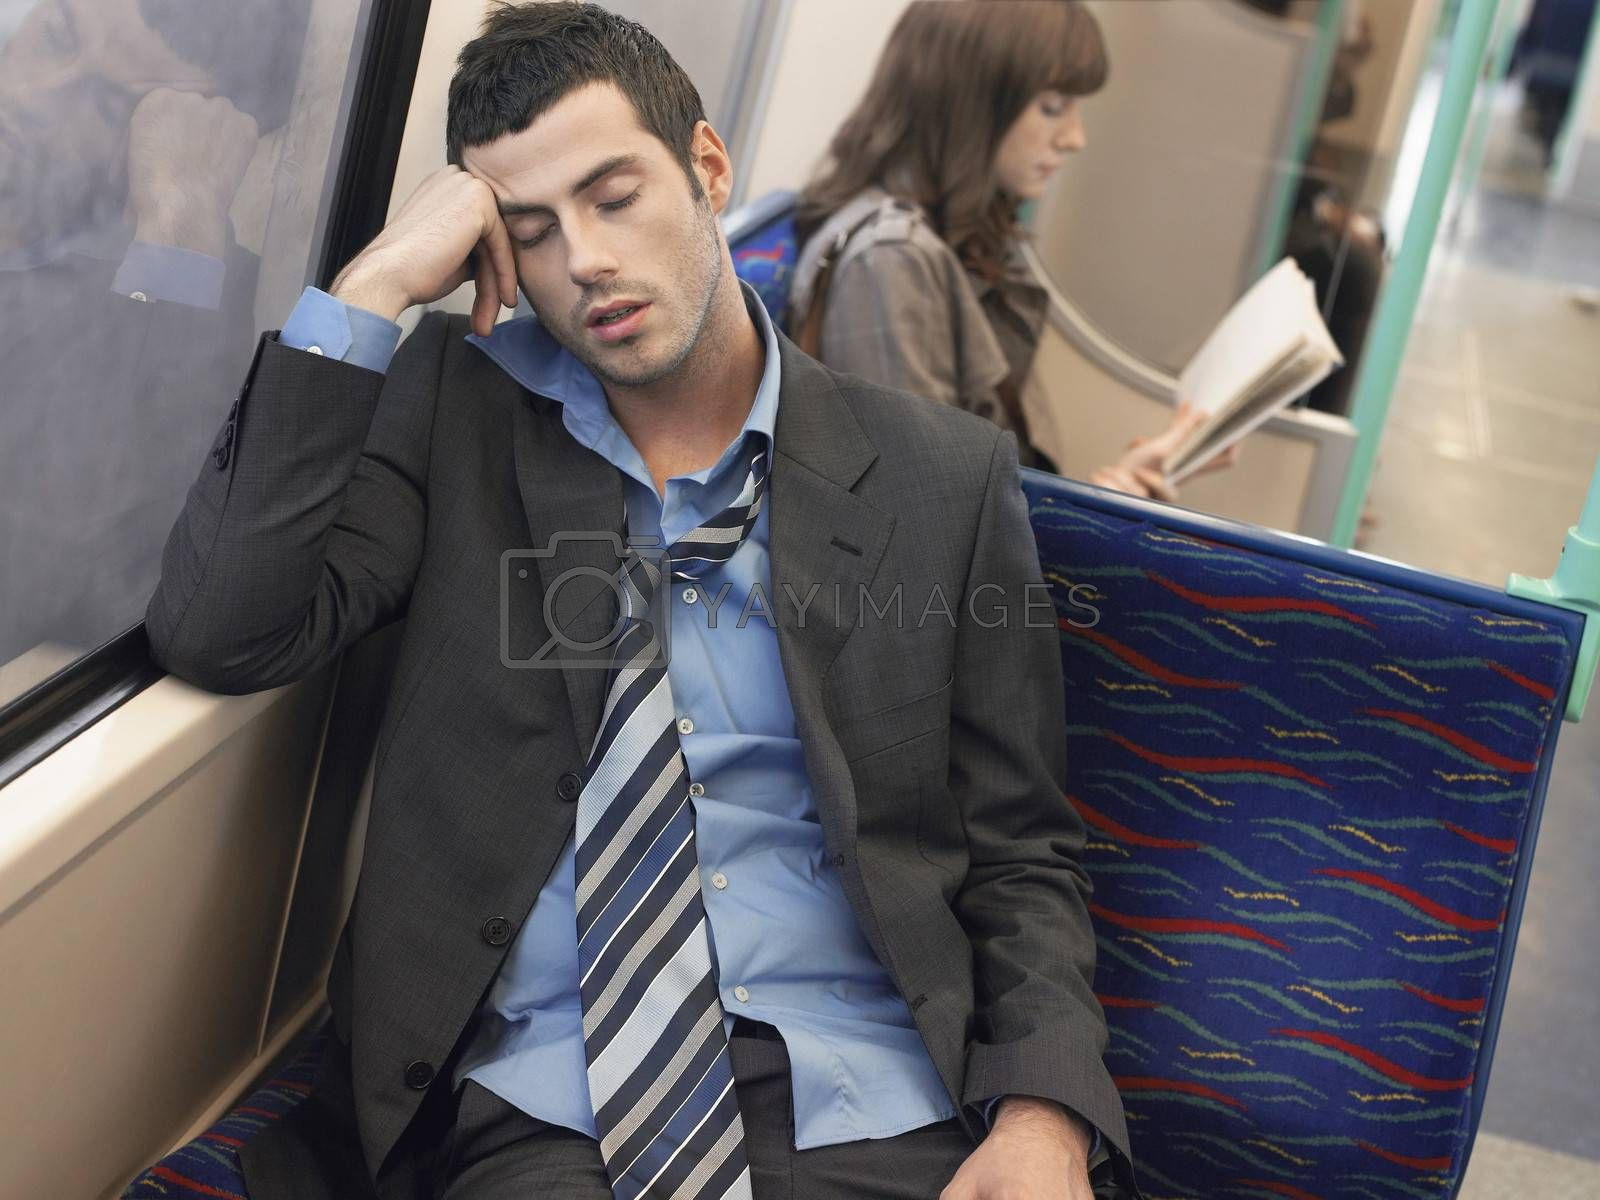 Businessman with loosened tie sleeping in commuter train by moodboard